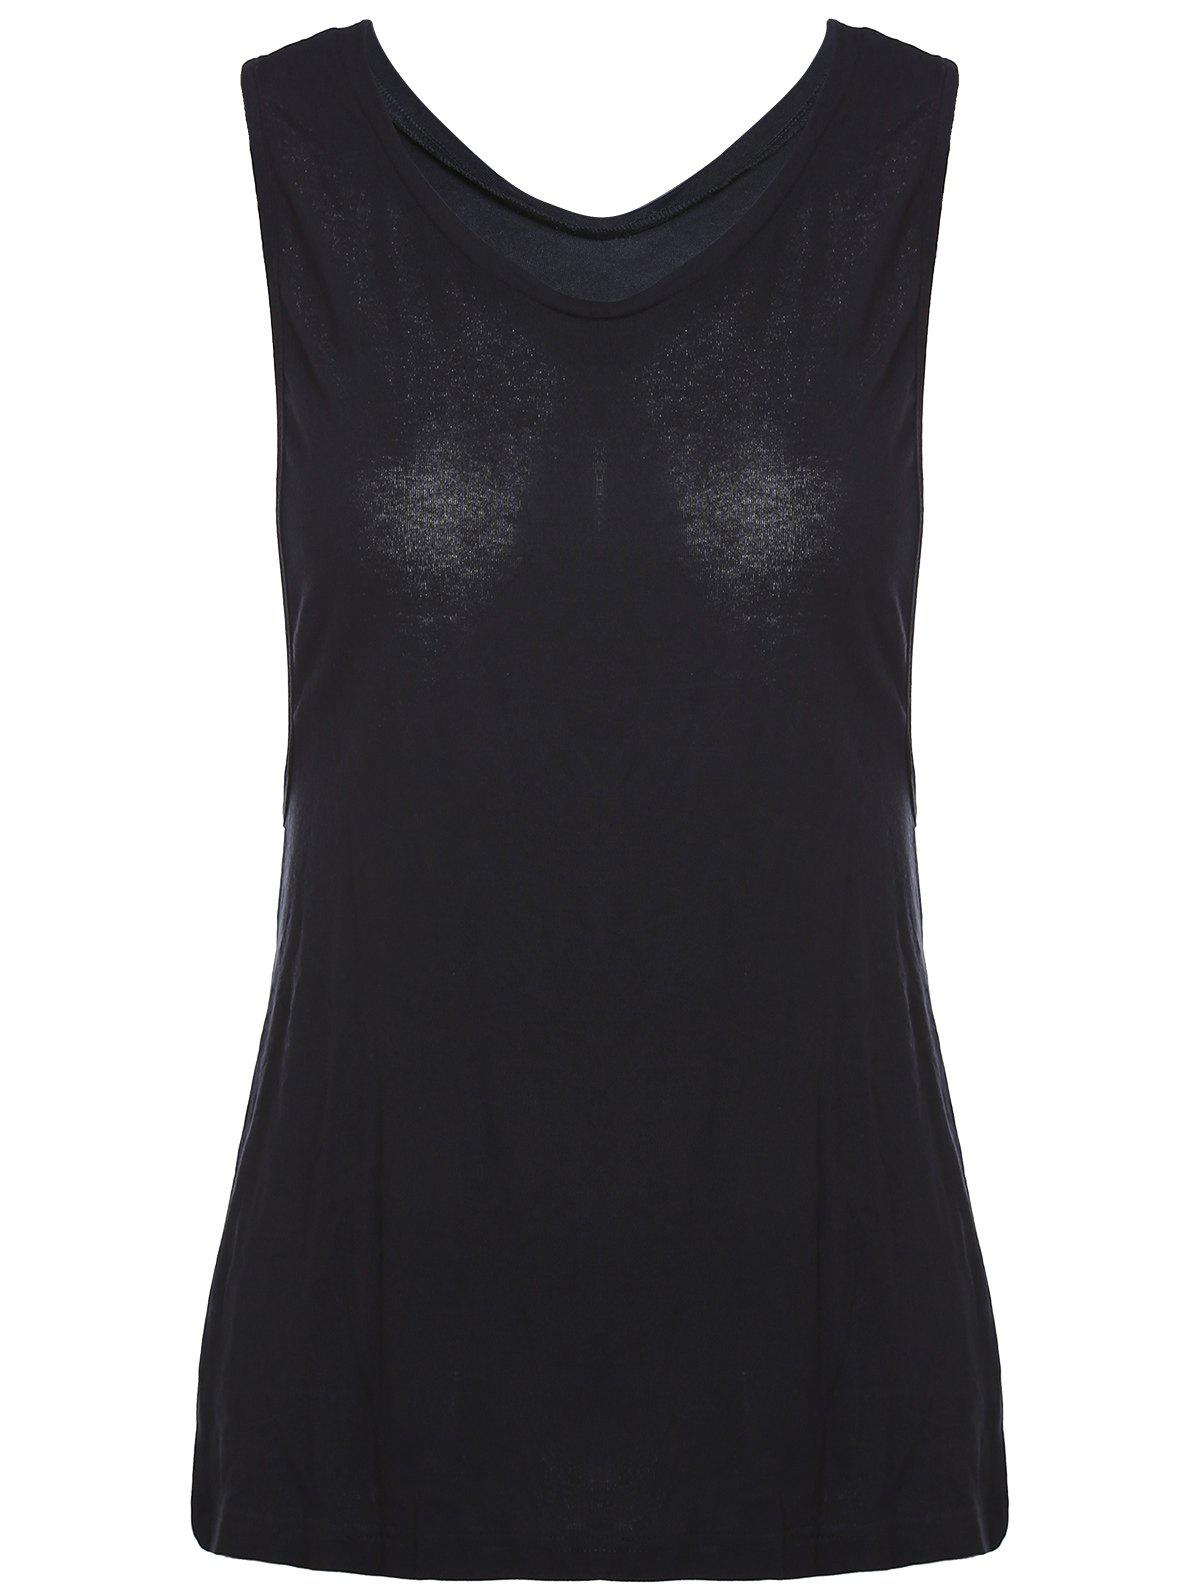 Buy Chic V-Neck Cut Out Solid Color Women's Tank Top